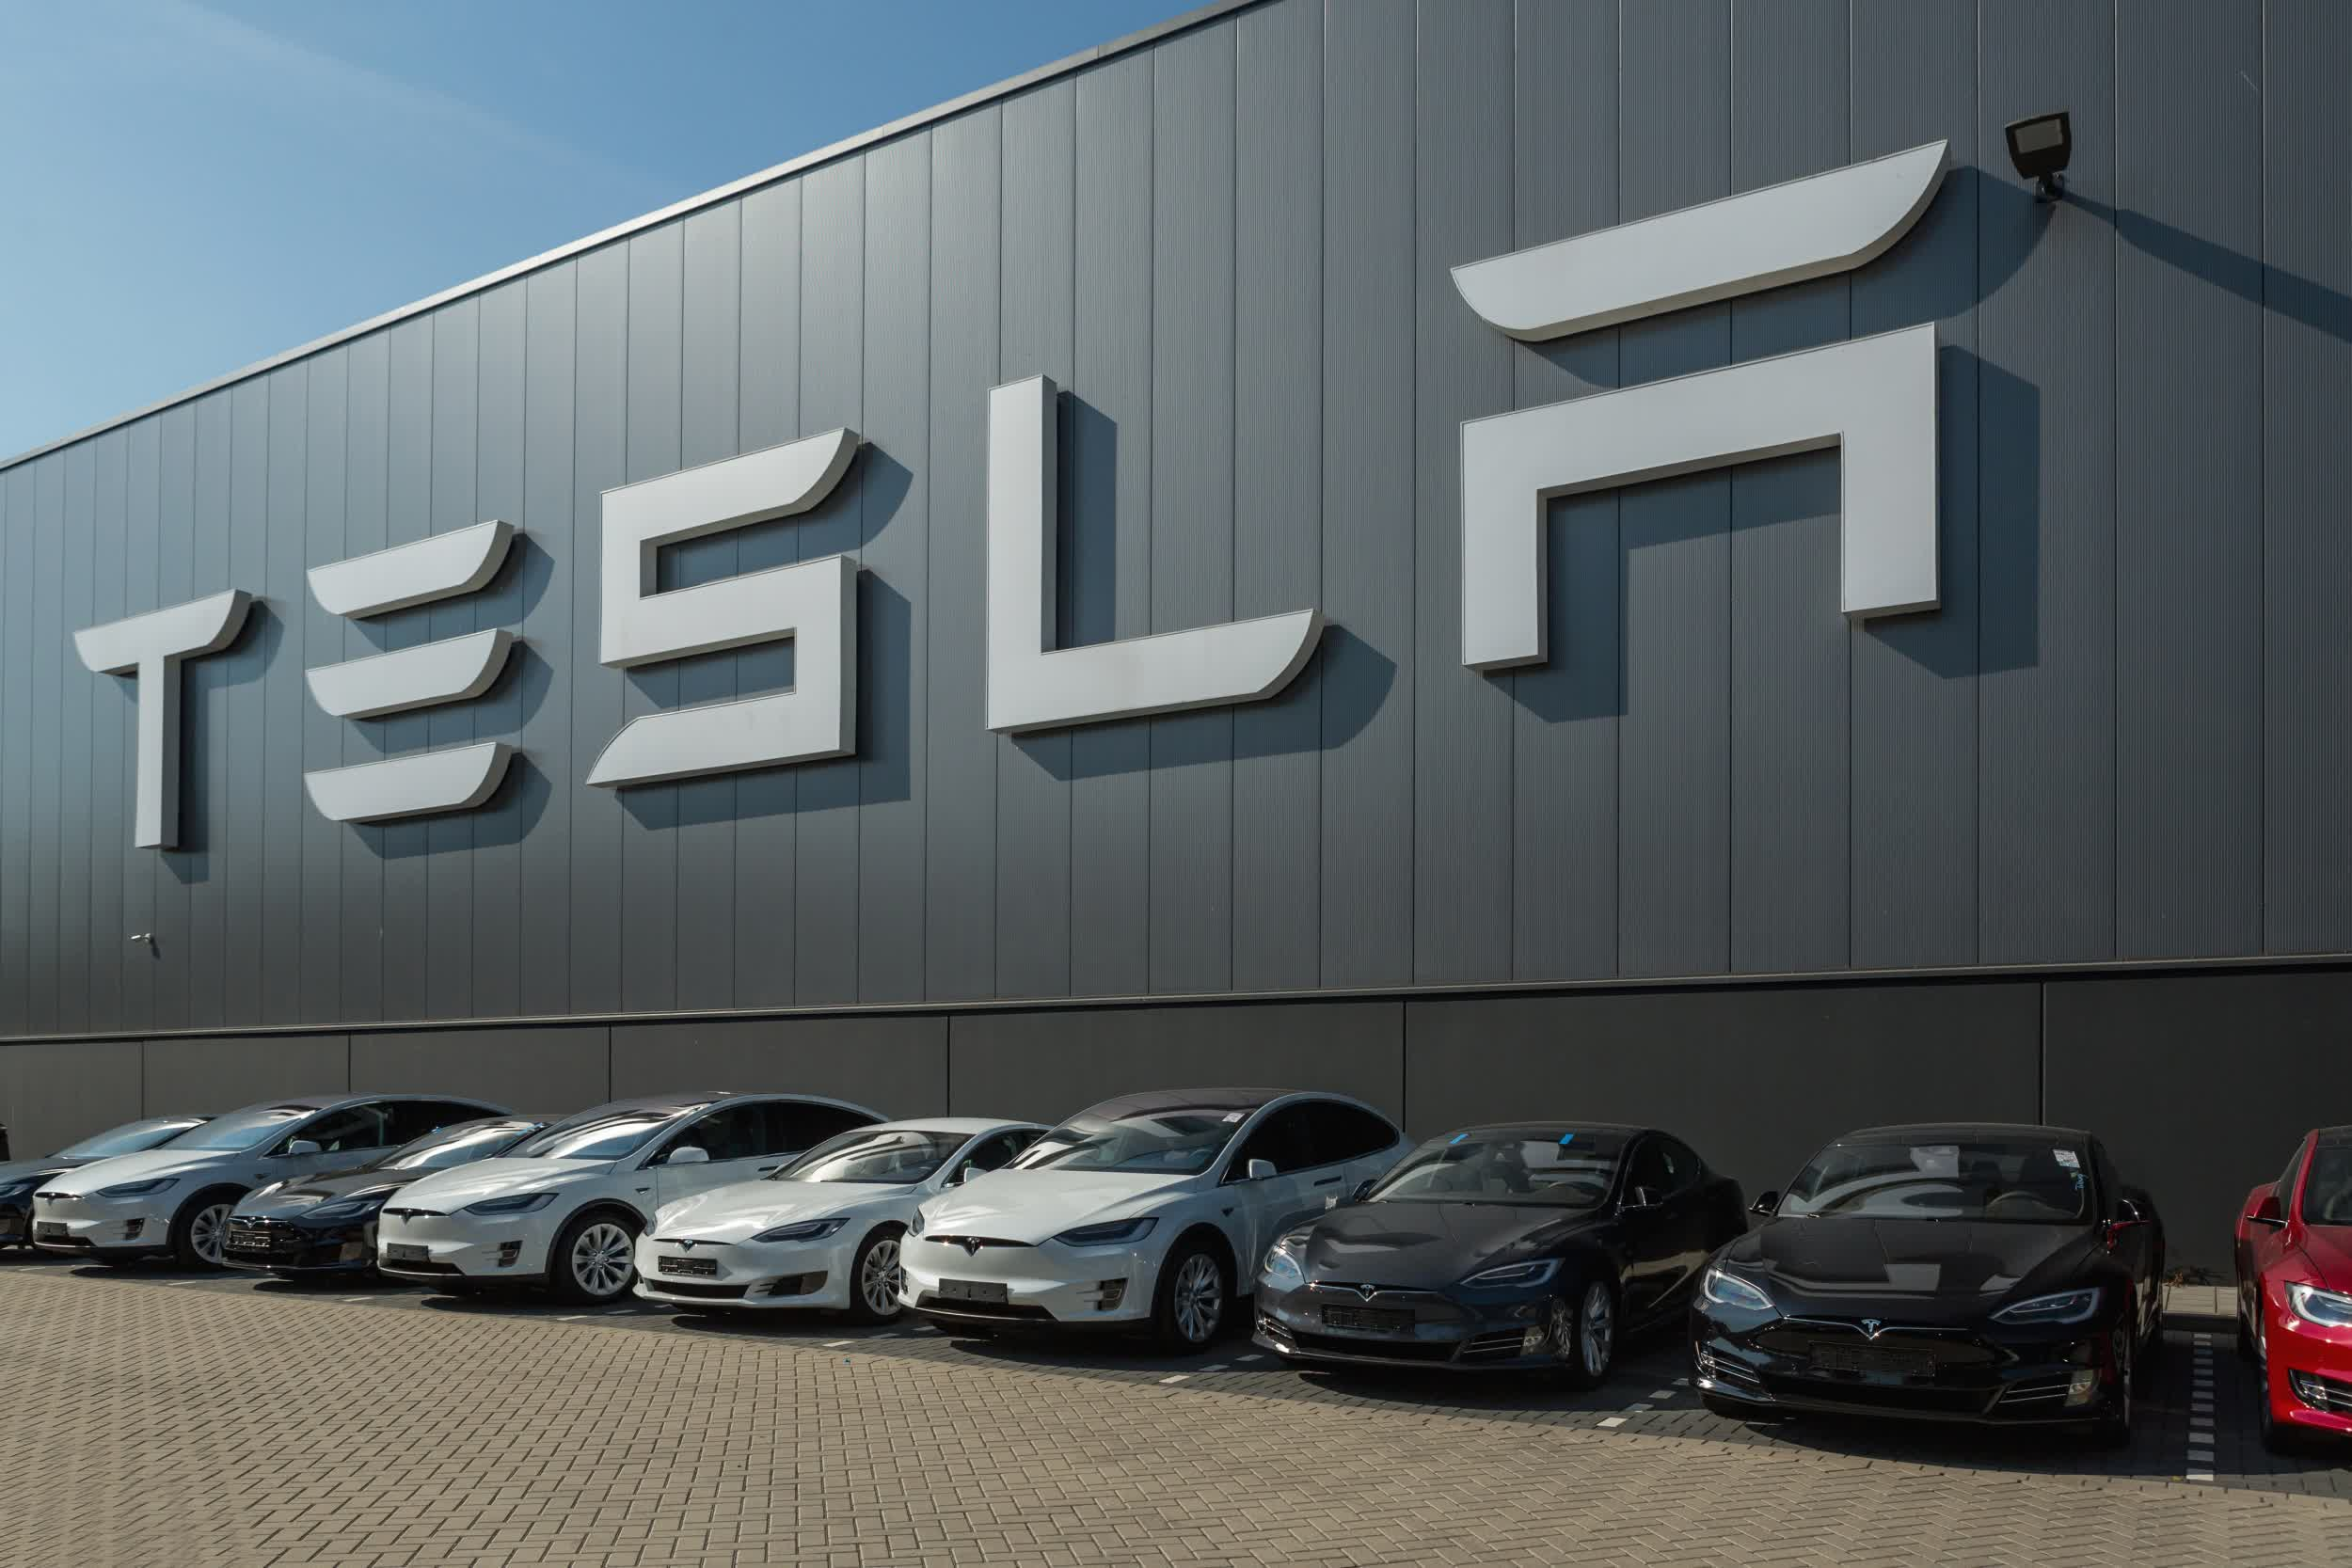 Tesla breaks Q2 profit records, but part shortages will stunt growth in coming quarters